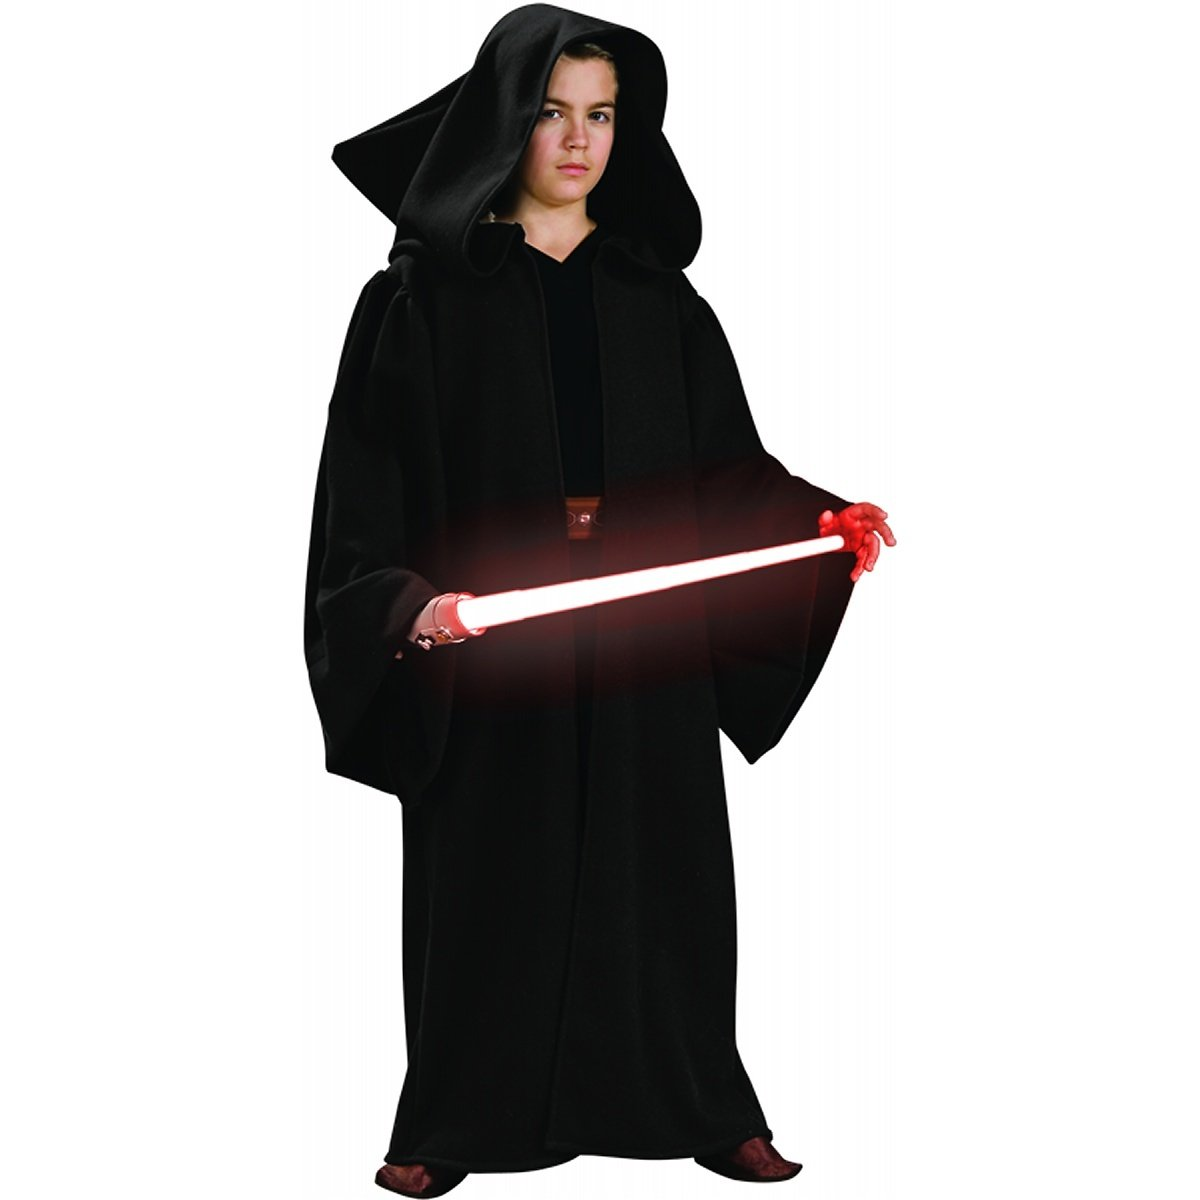 Amazon.com Star Wars Childu0027s Deluxe Hooded Sith Robe Large Toys u0026 Games  sc 1 st  Amazon.com & Amazon.com: Star Wars Childu0027s Deluxe Hooded Sith Robe Large: Toys ...